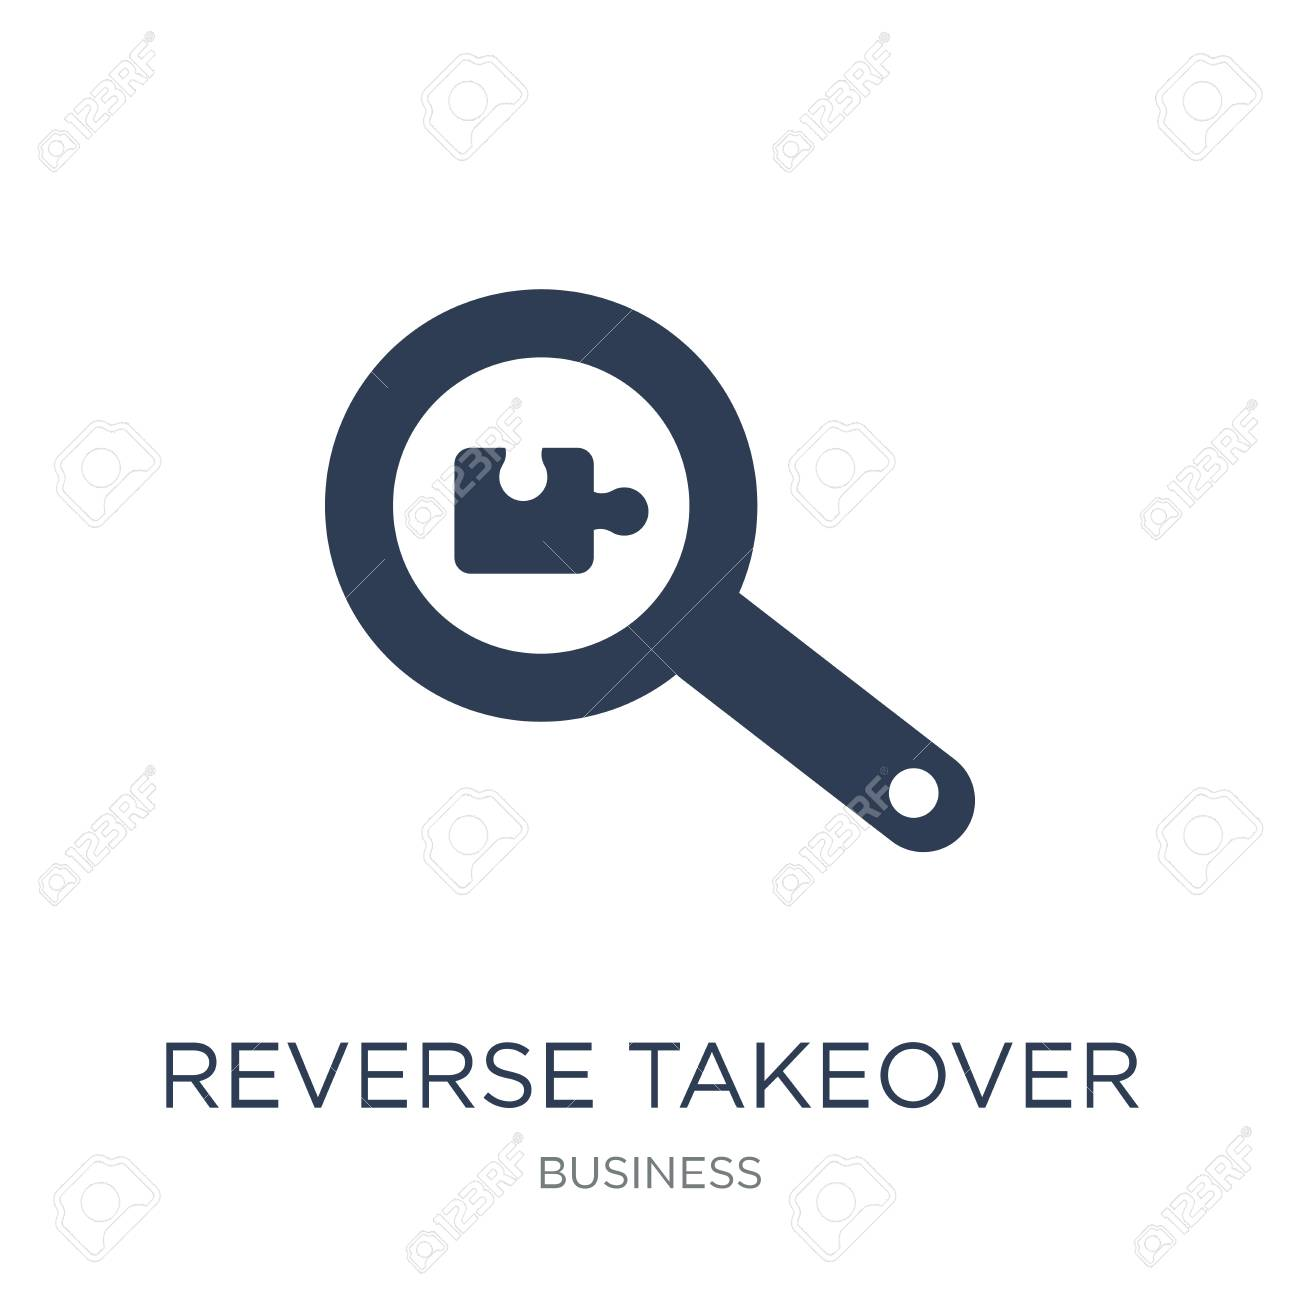 Reverse takeover icon  Trendy flat vector Reverse takeover icon